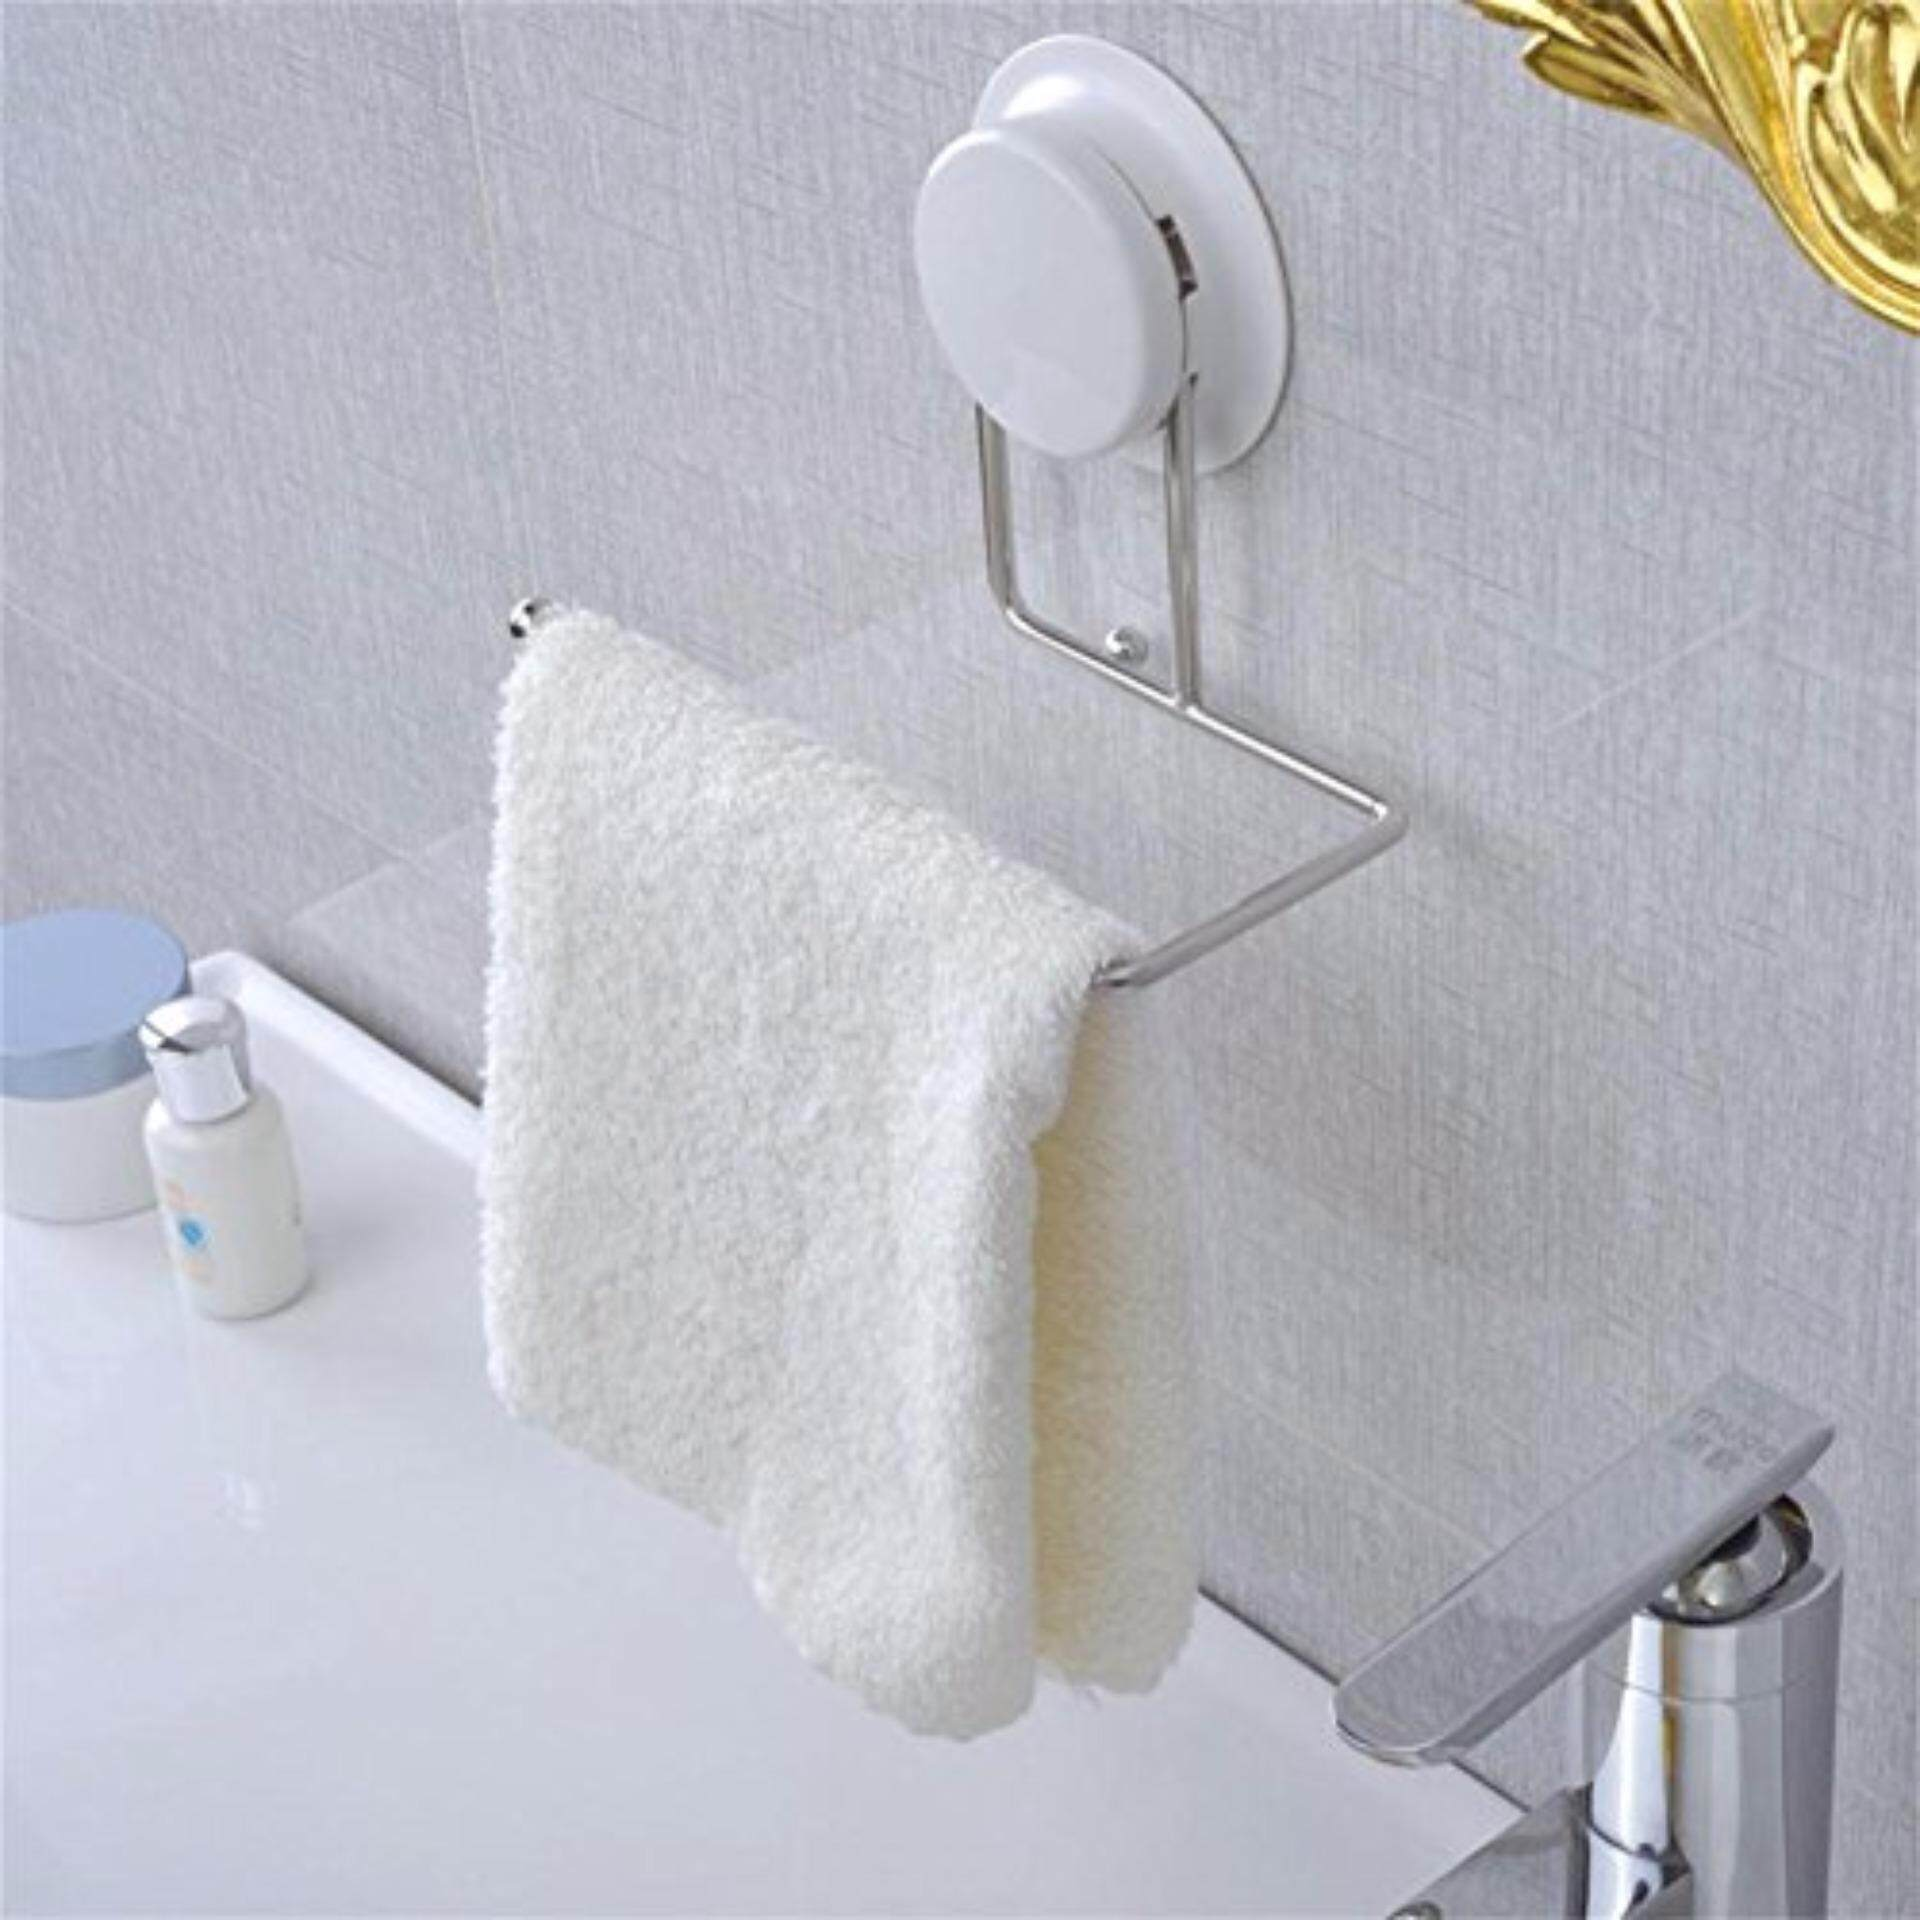 Garbath Paper Roll Holder & Towel Holder